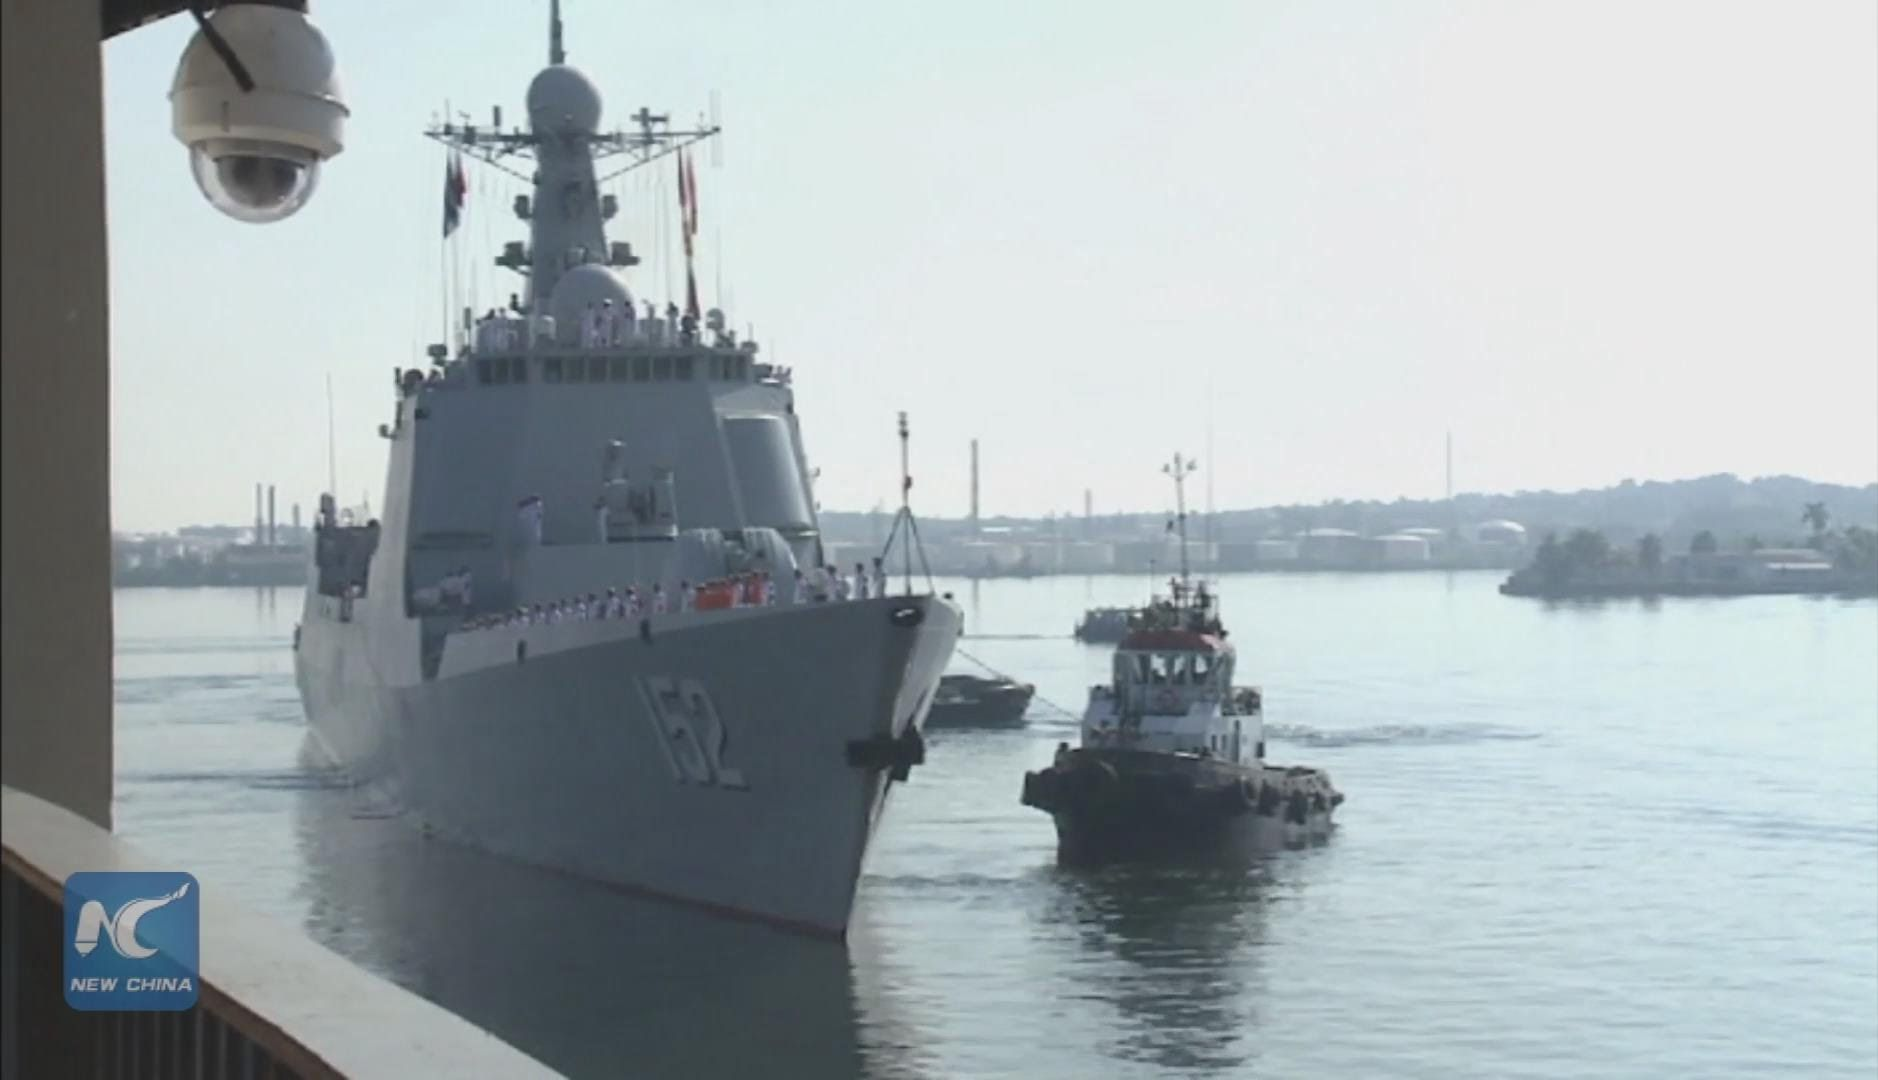 Chinese military flotilla visits Cuba for first time ever